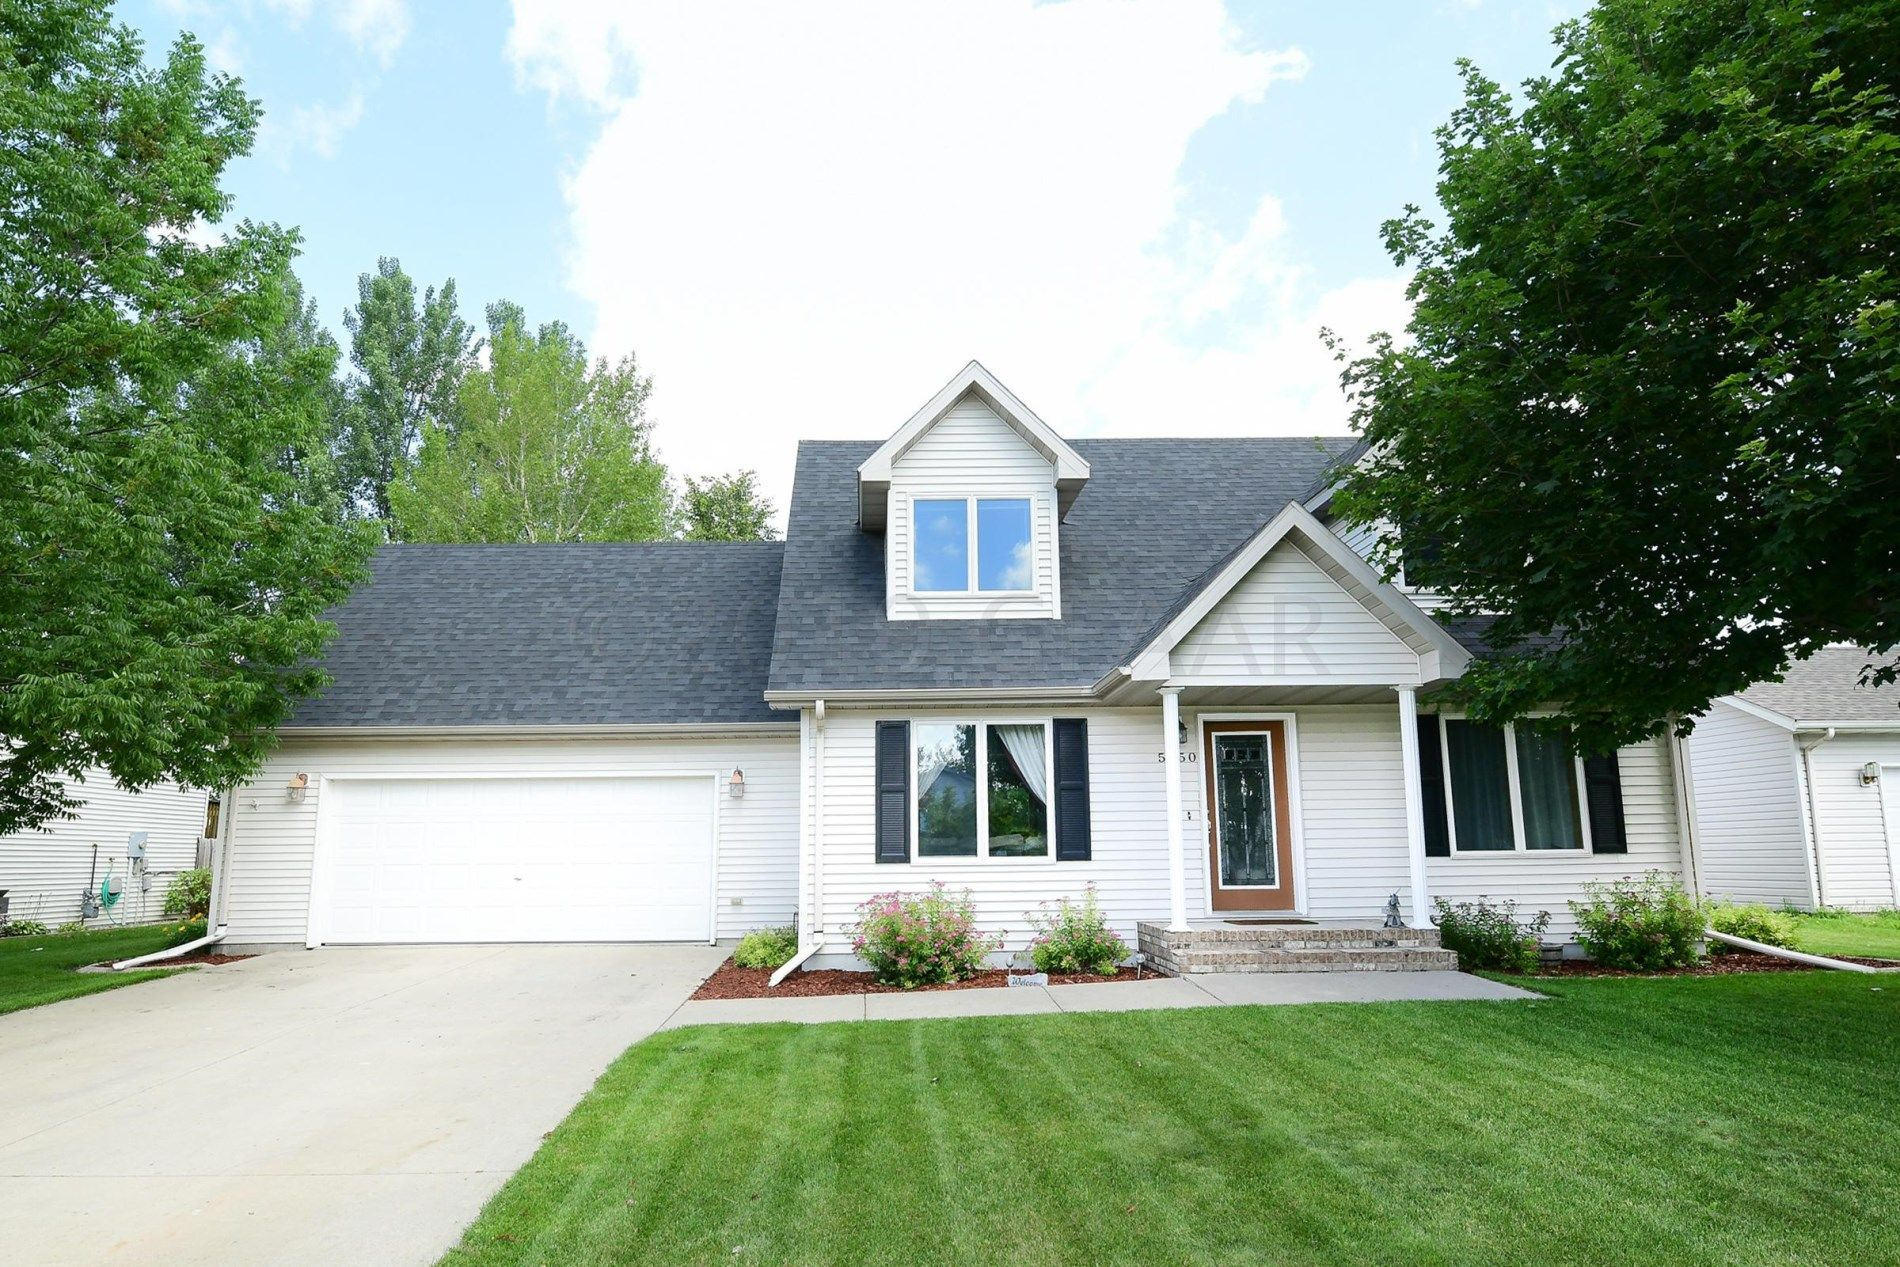 5150 W Lanark Drive Grand Forks Nd 58203 Mls 19 1325 Listing Information Berkshire Hathaway Homeservice Fenced In Yard Cape Cod Style House Exit Realty